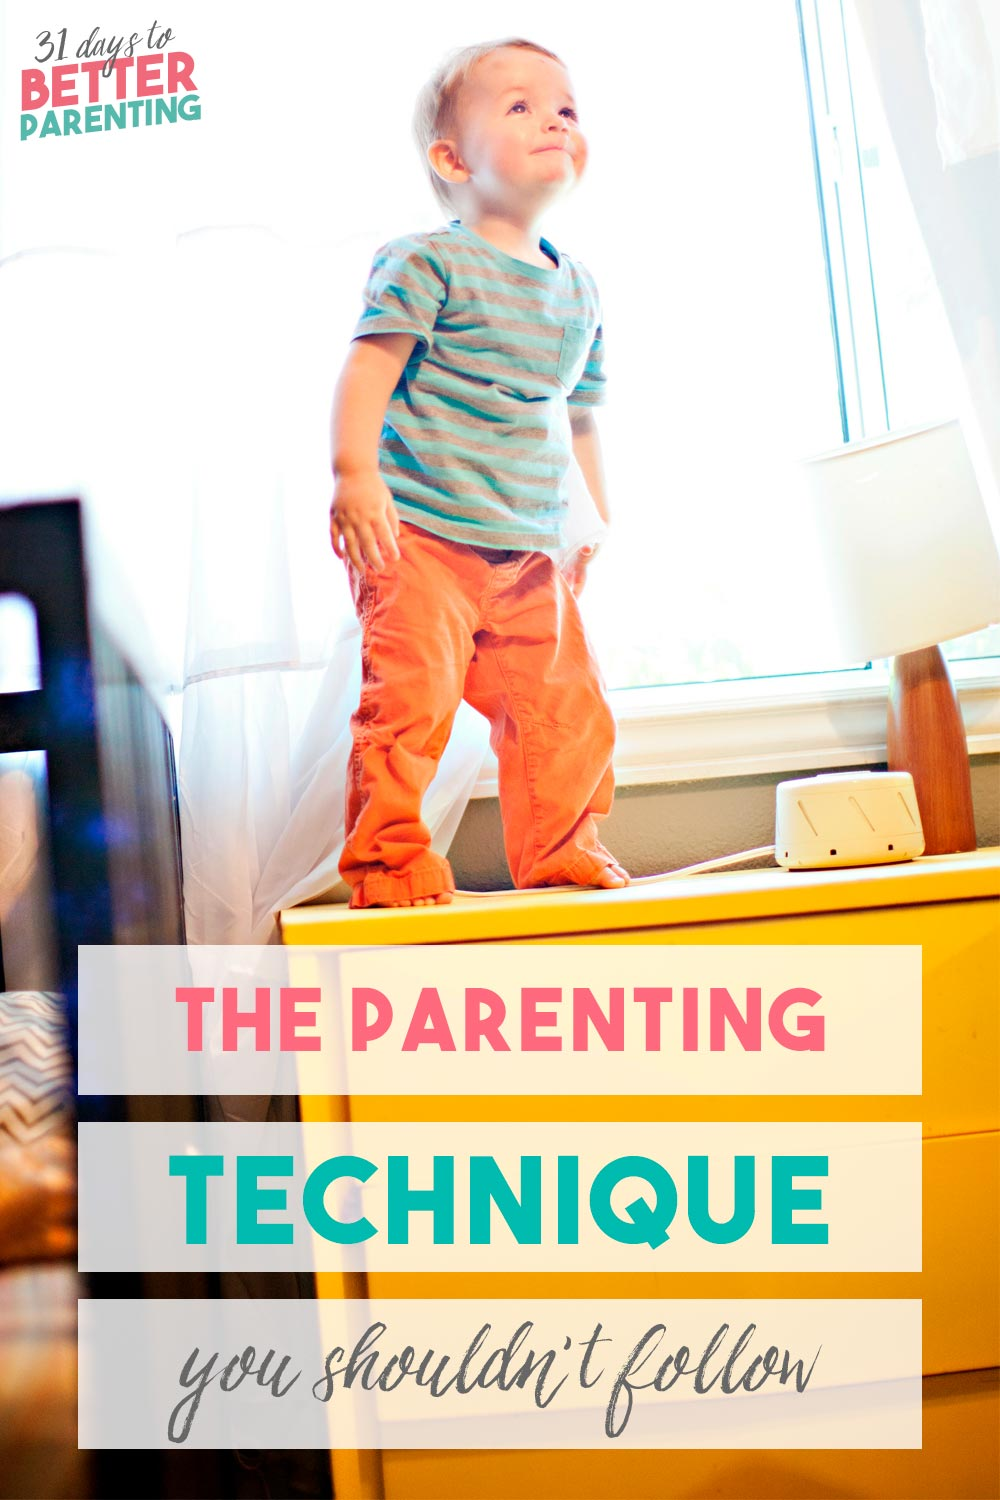 When your child misbehaves or cries, it's tempting to do this to get him quiet or stop crying. But this is one parenting technique you shouldn't follow.